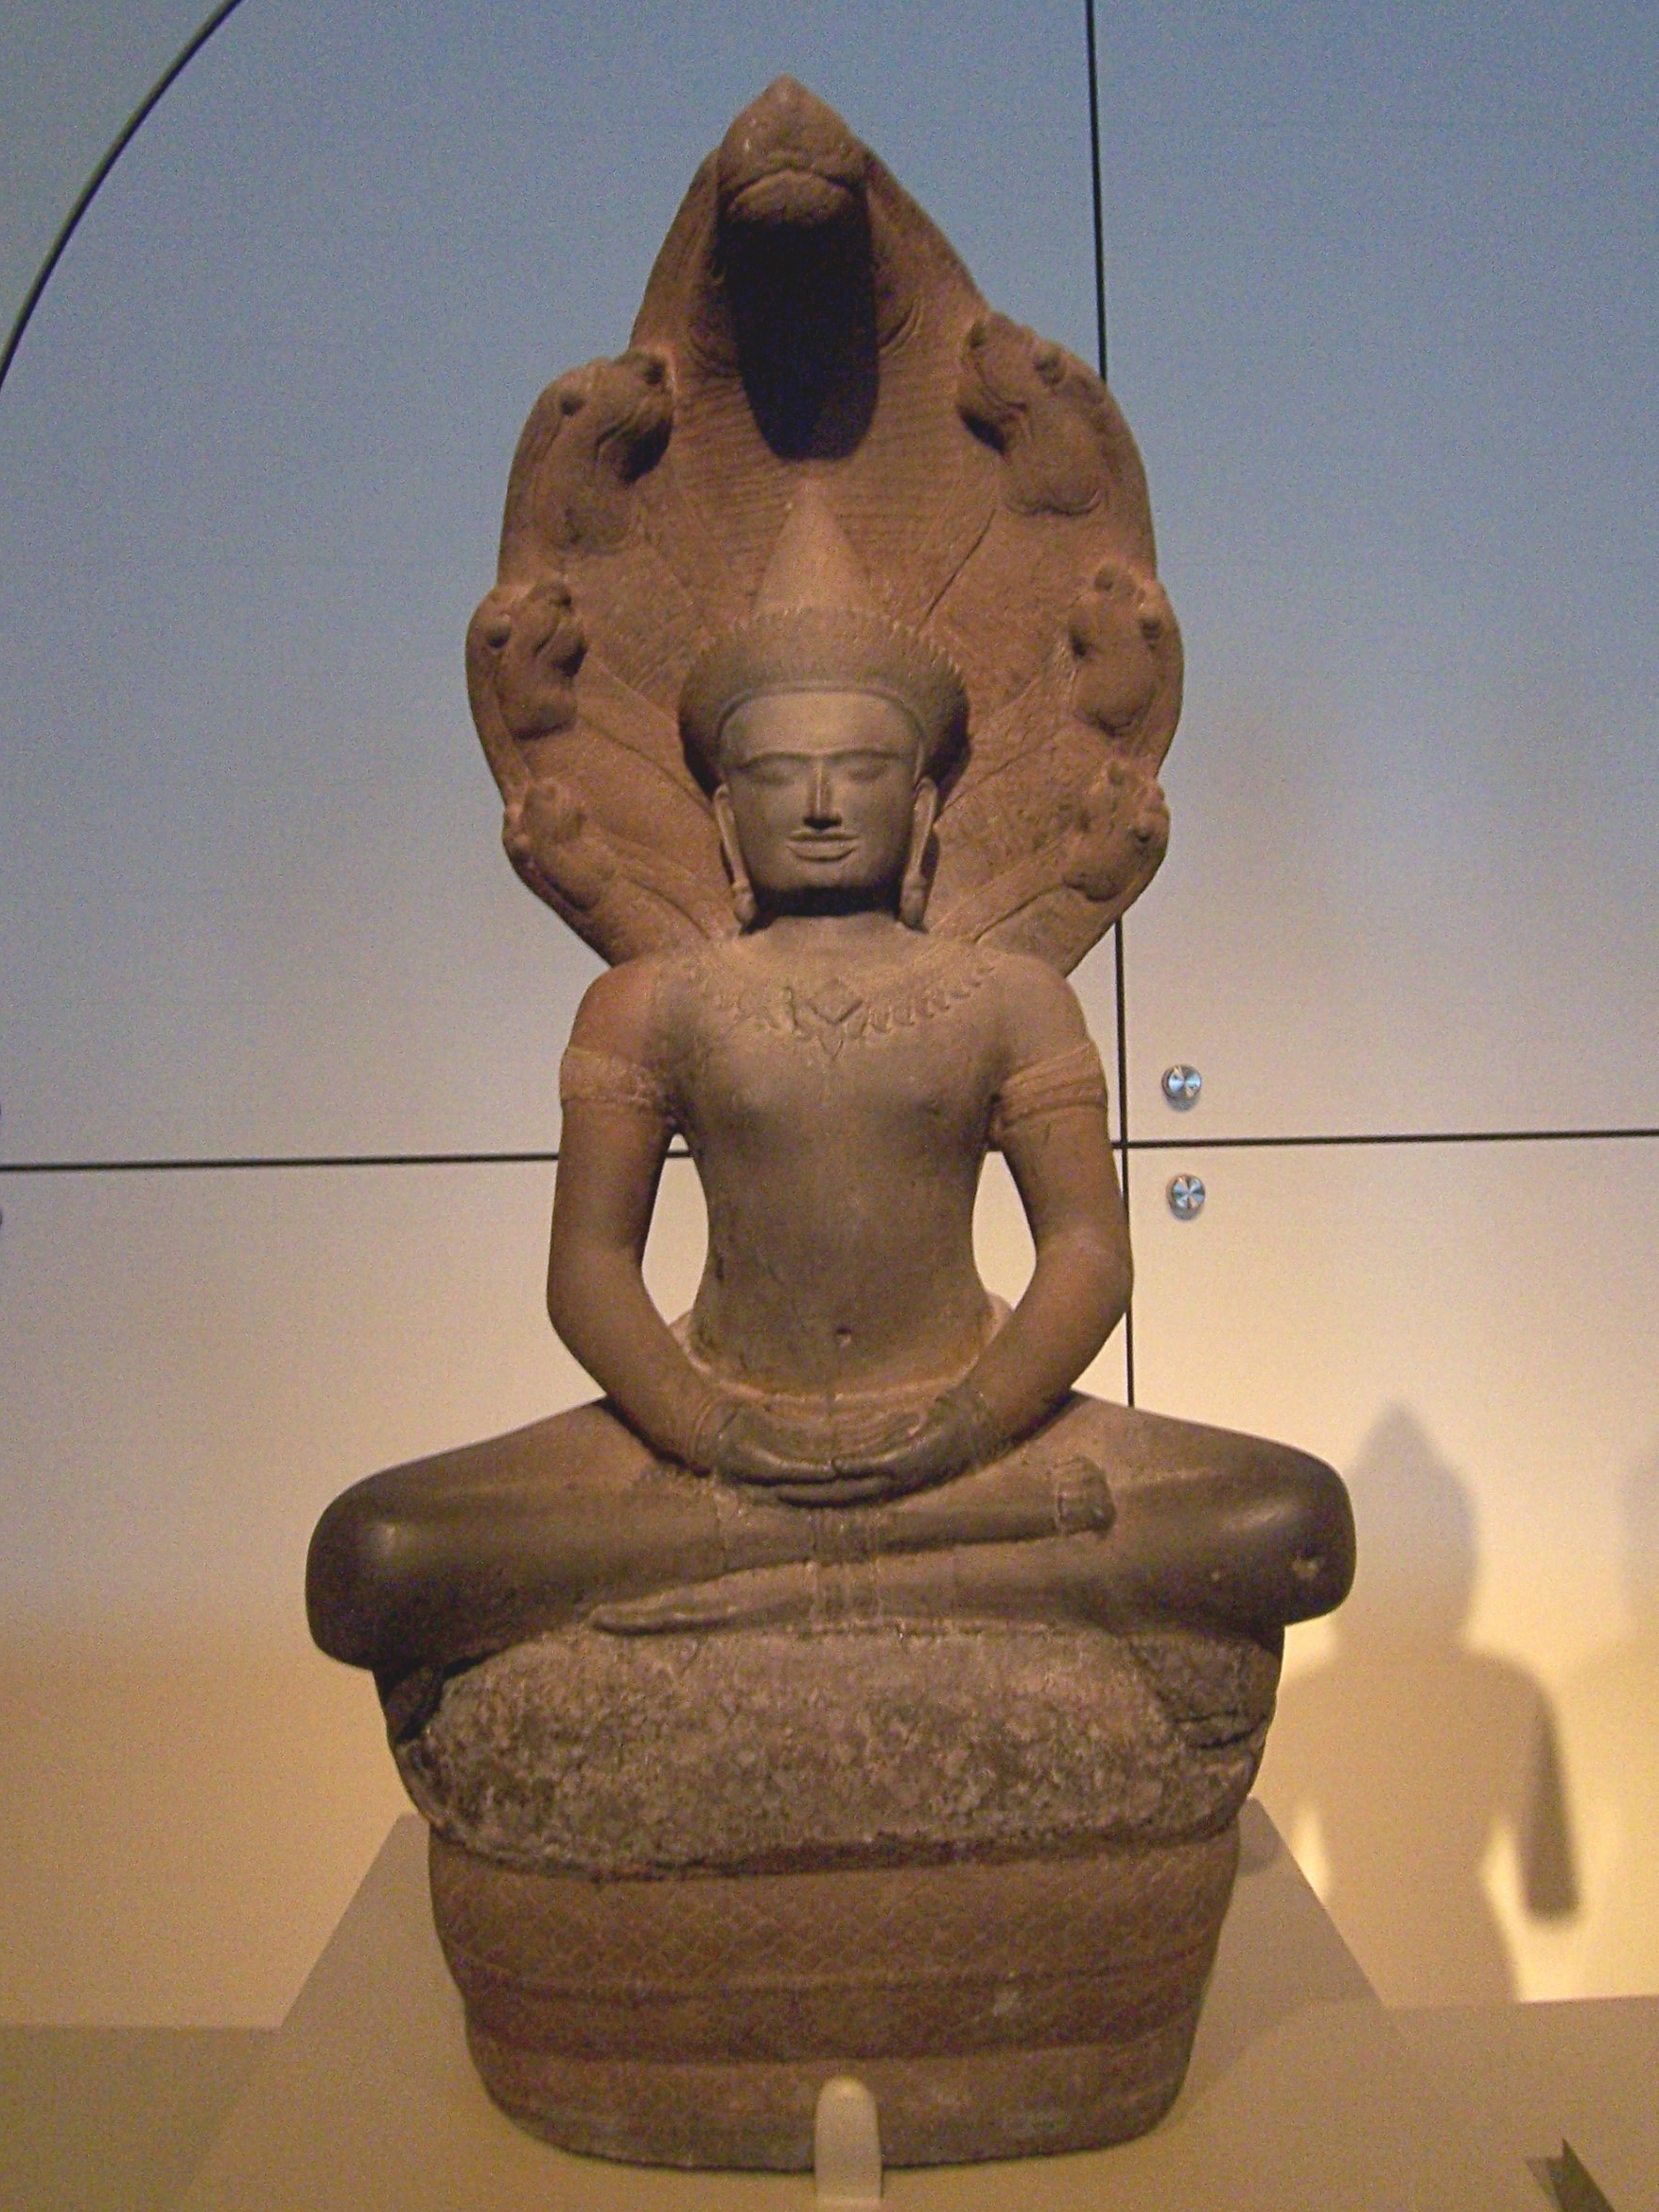 """12th-century Cambodian sculpture of Buddha"". The Museum houses an irreplaceable collection of Asian art and artifacts and represents the largest non-property asset in the City of San Francisco with an estimated value of $5 Billion."